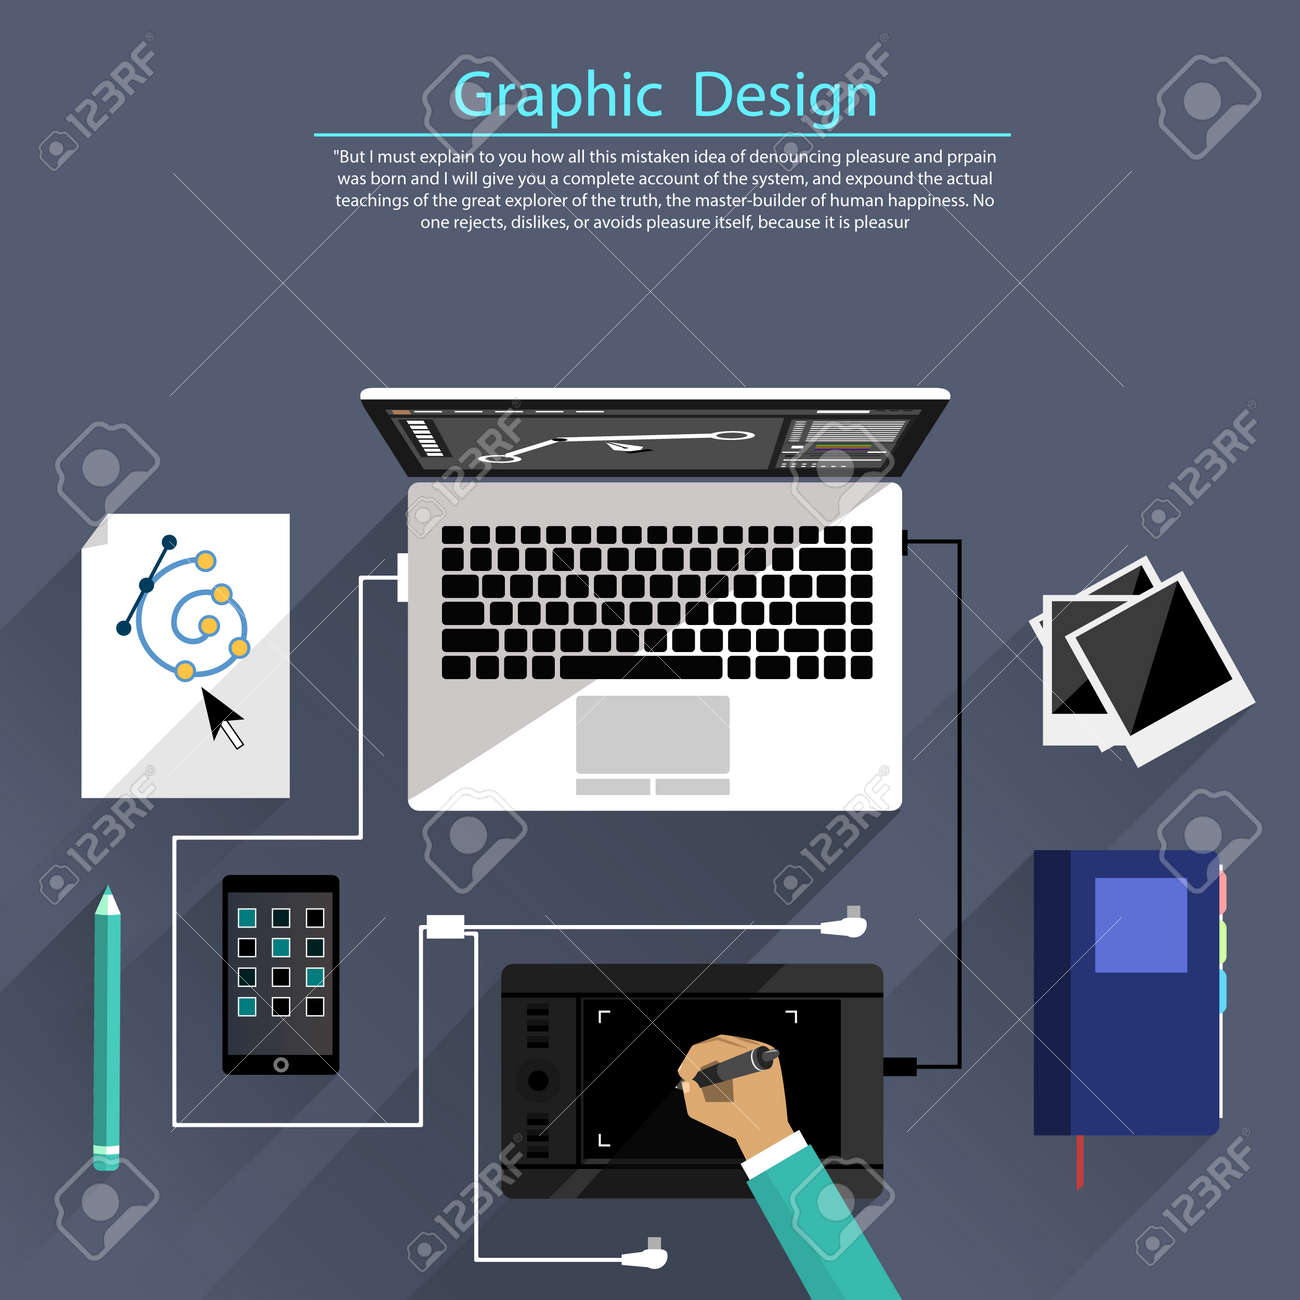 Concept For Graphic Design Designer Tools And Software In Flat Royalty Free Cliparts Vectors And Stock Illustration Image 34811281